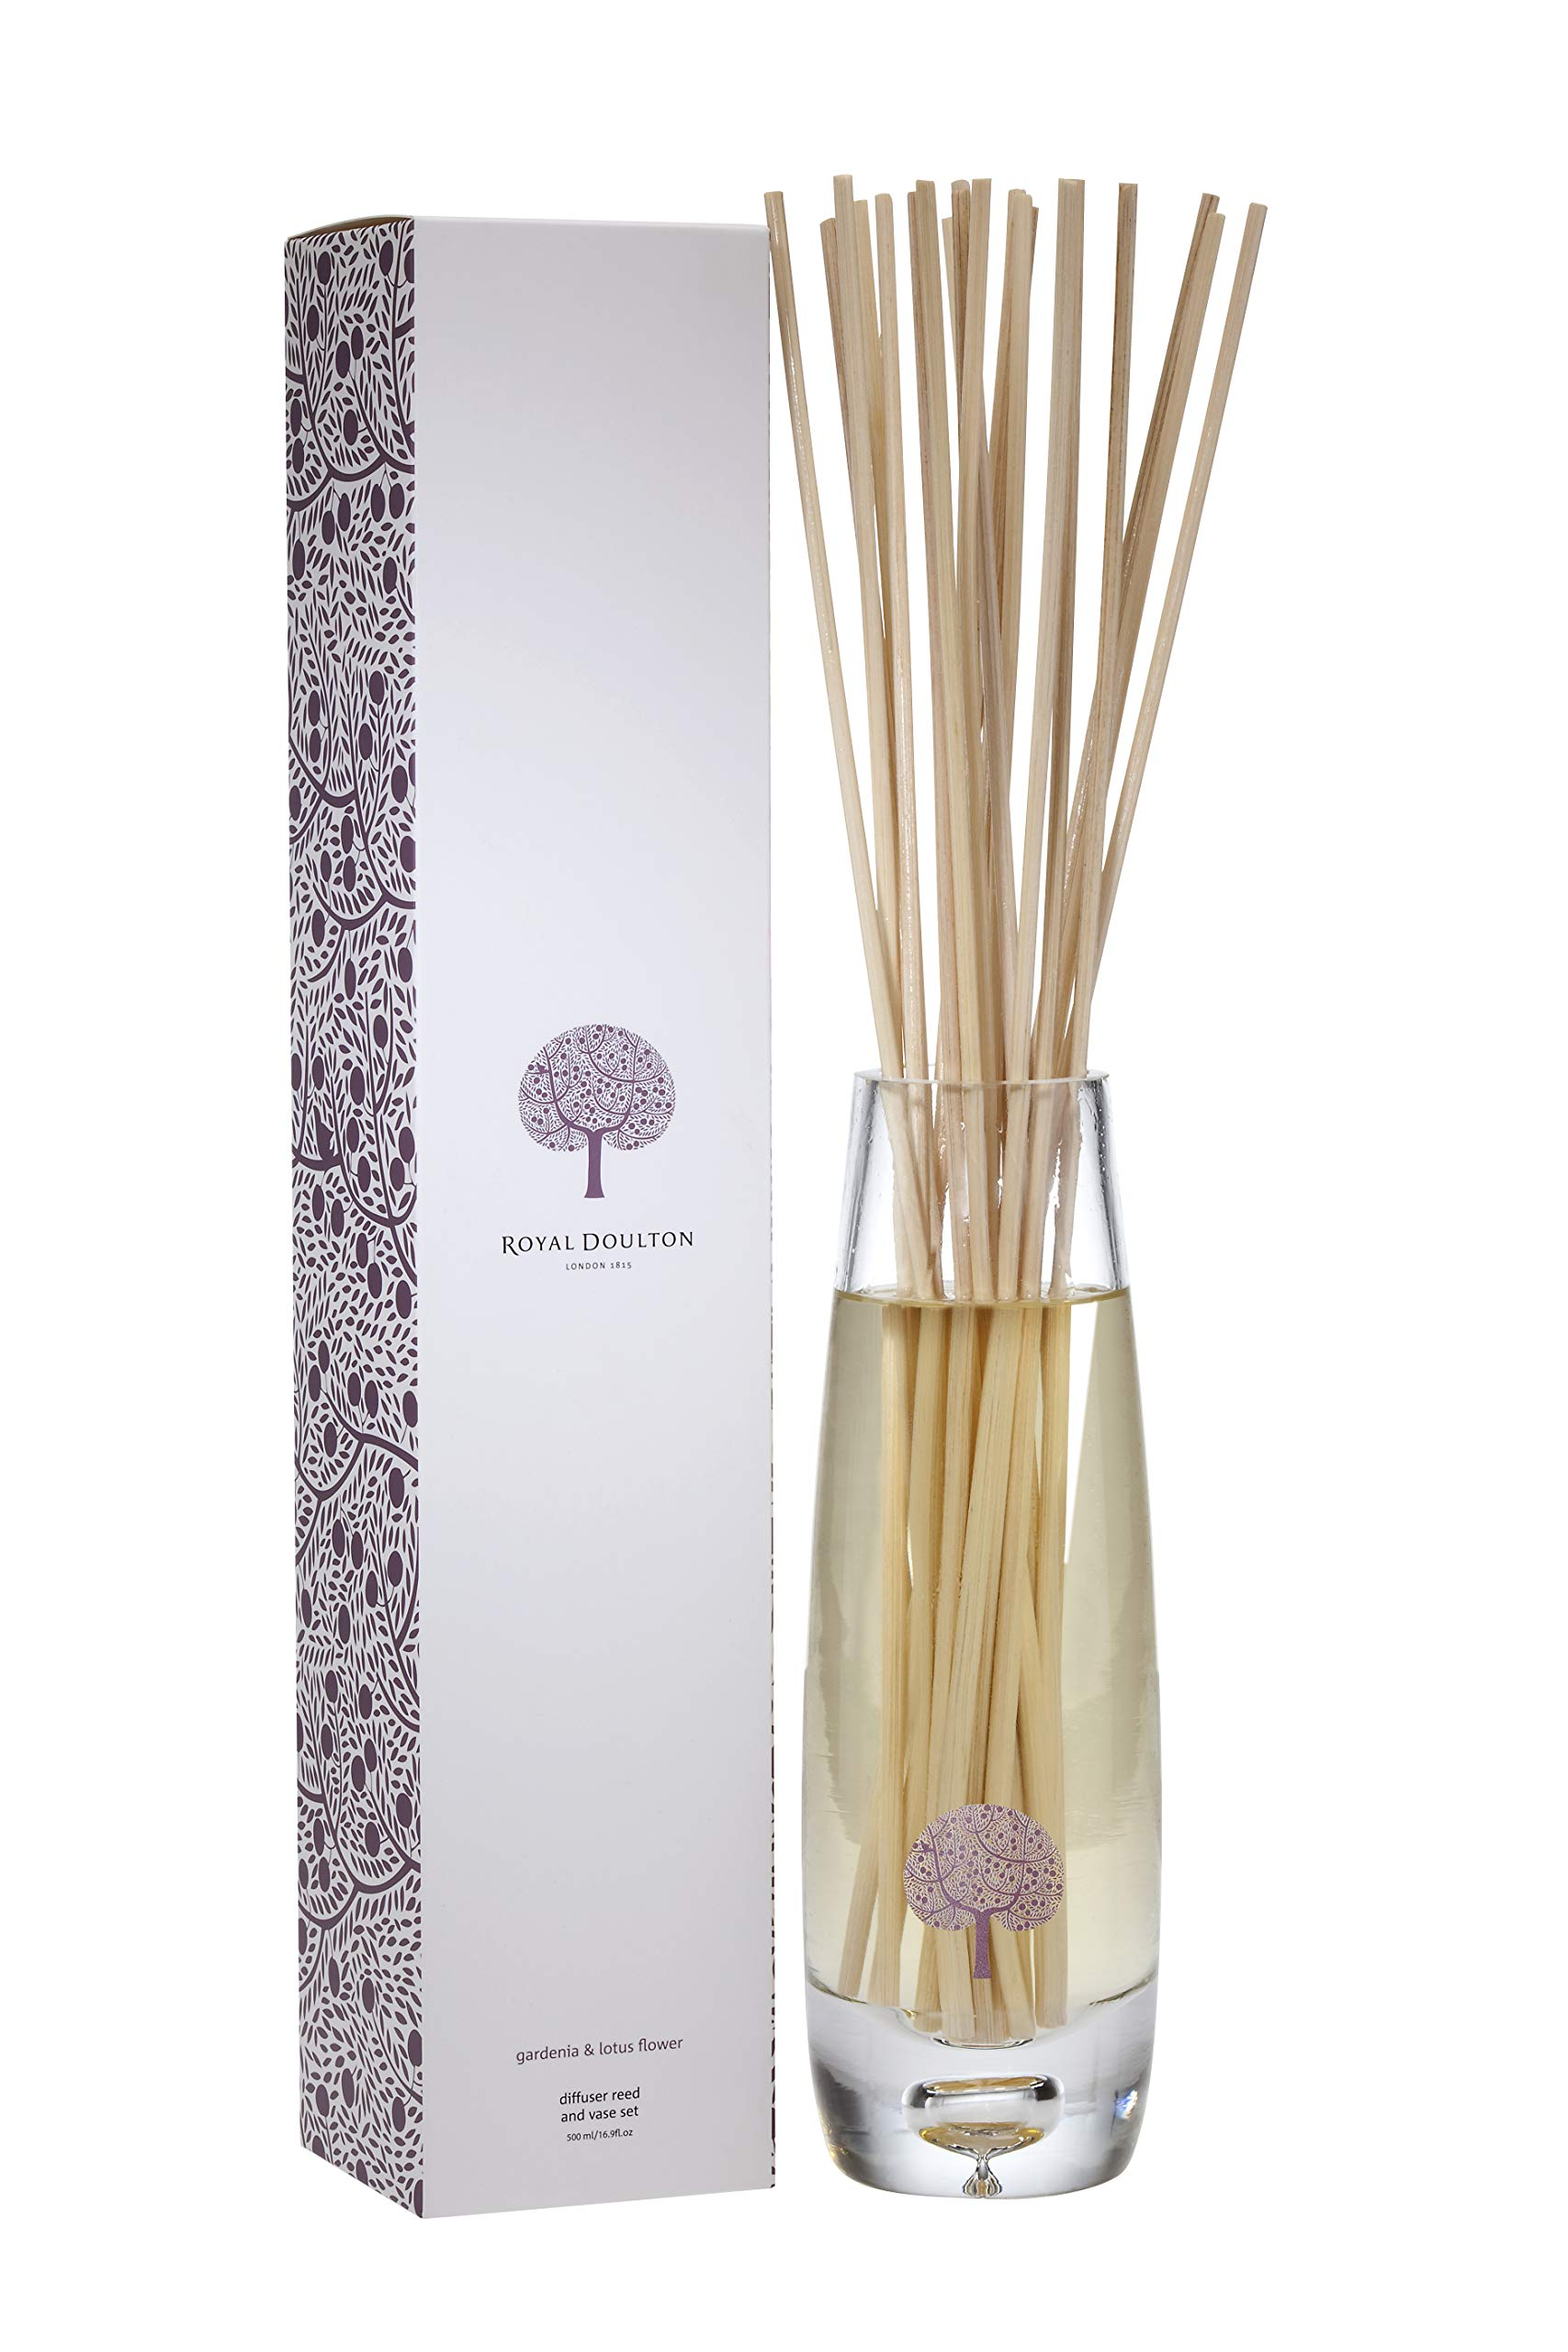 ROYAL DOULTON Luxury Reed Diffuser & Glass Vase Set - Reed Sticks. Long Lasting Natural Scented (6+ Months) 500 ml / 16.5 oz - Gardenia & Lotus Flower by ROYAL DOULTON